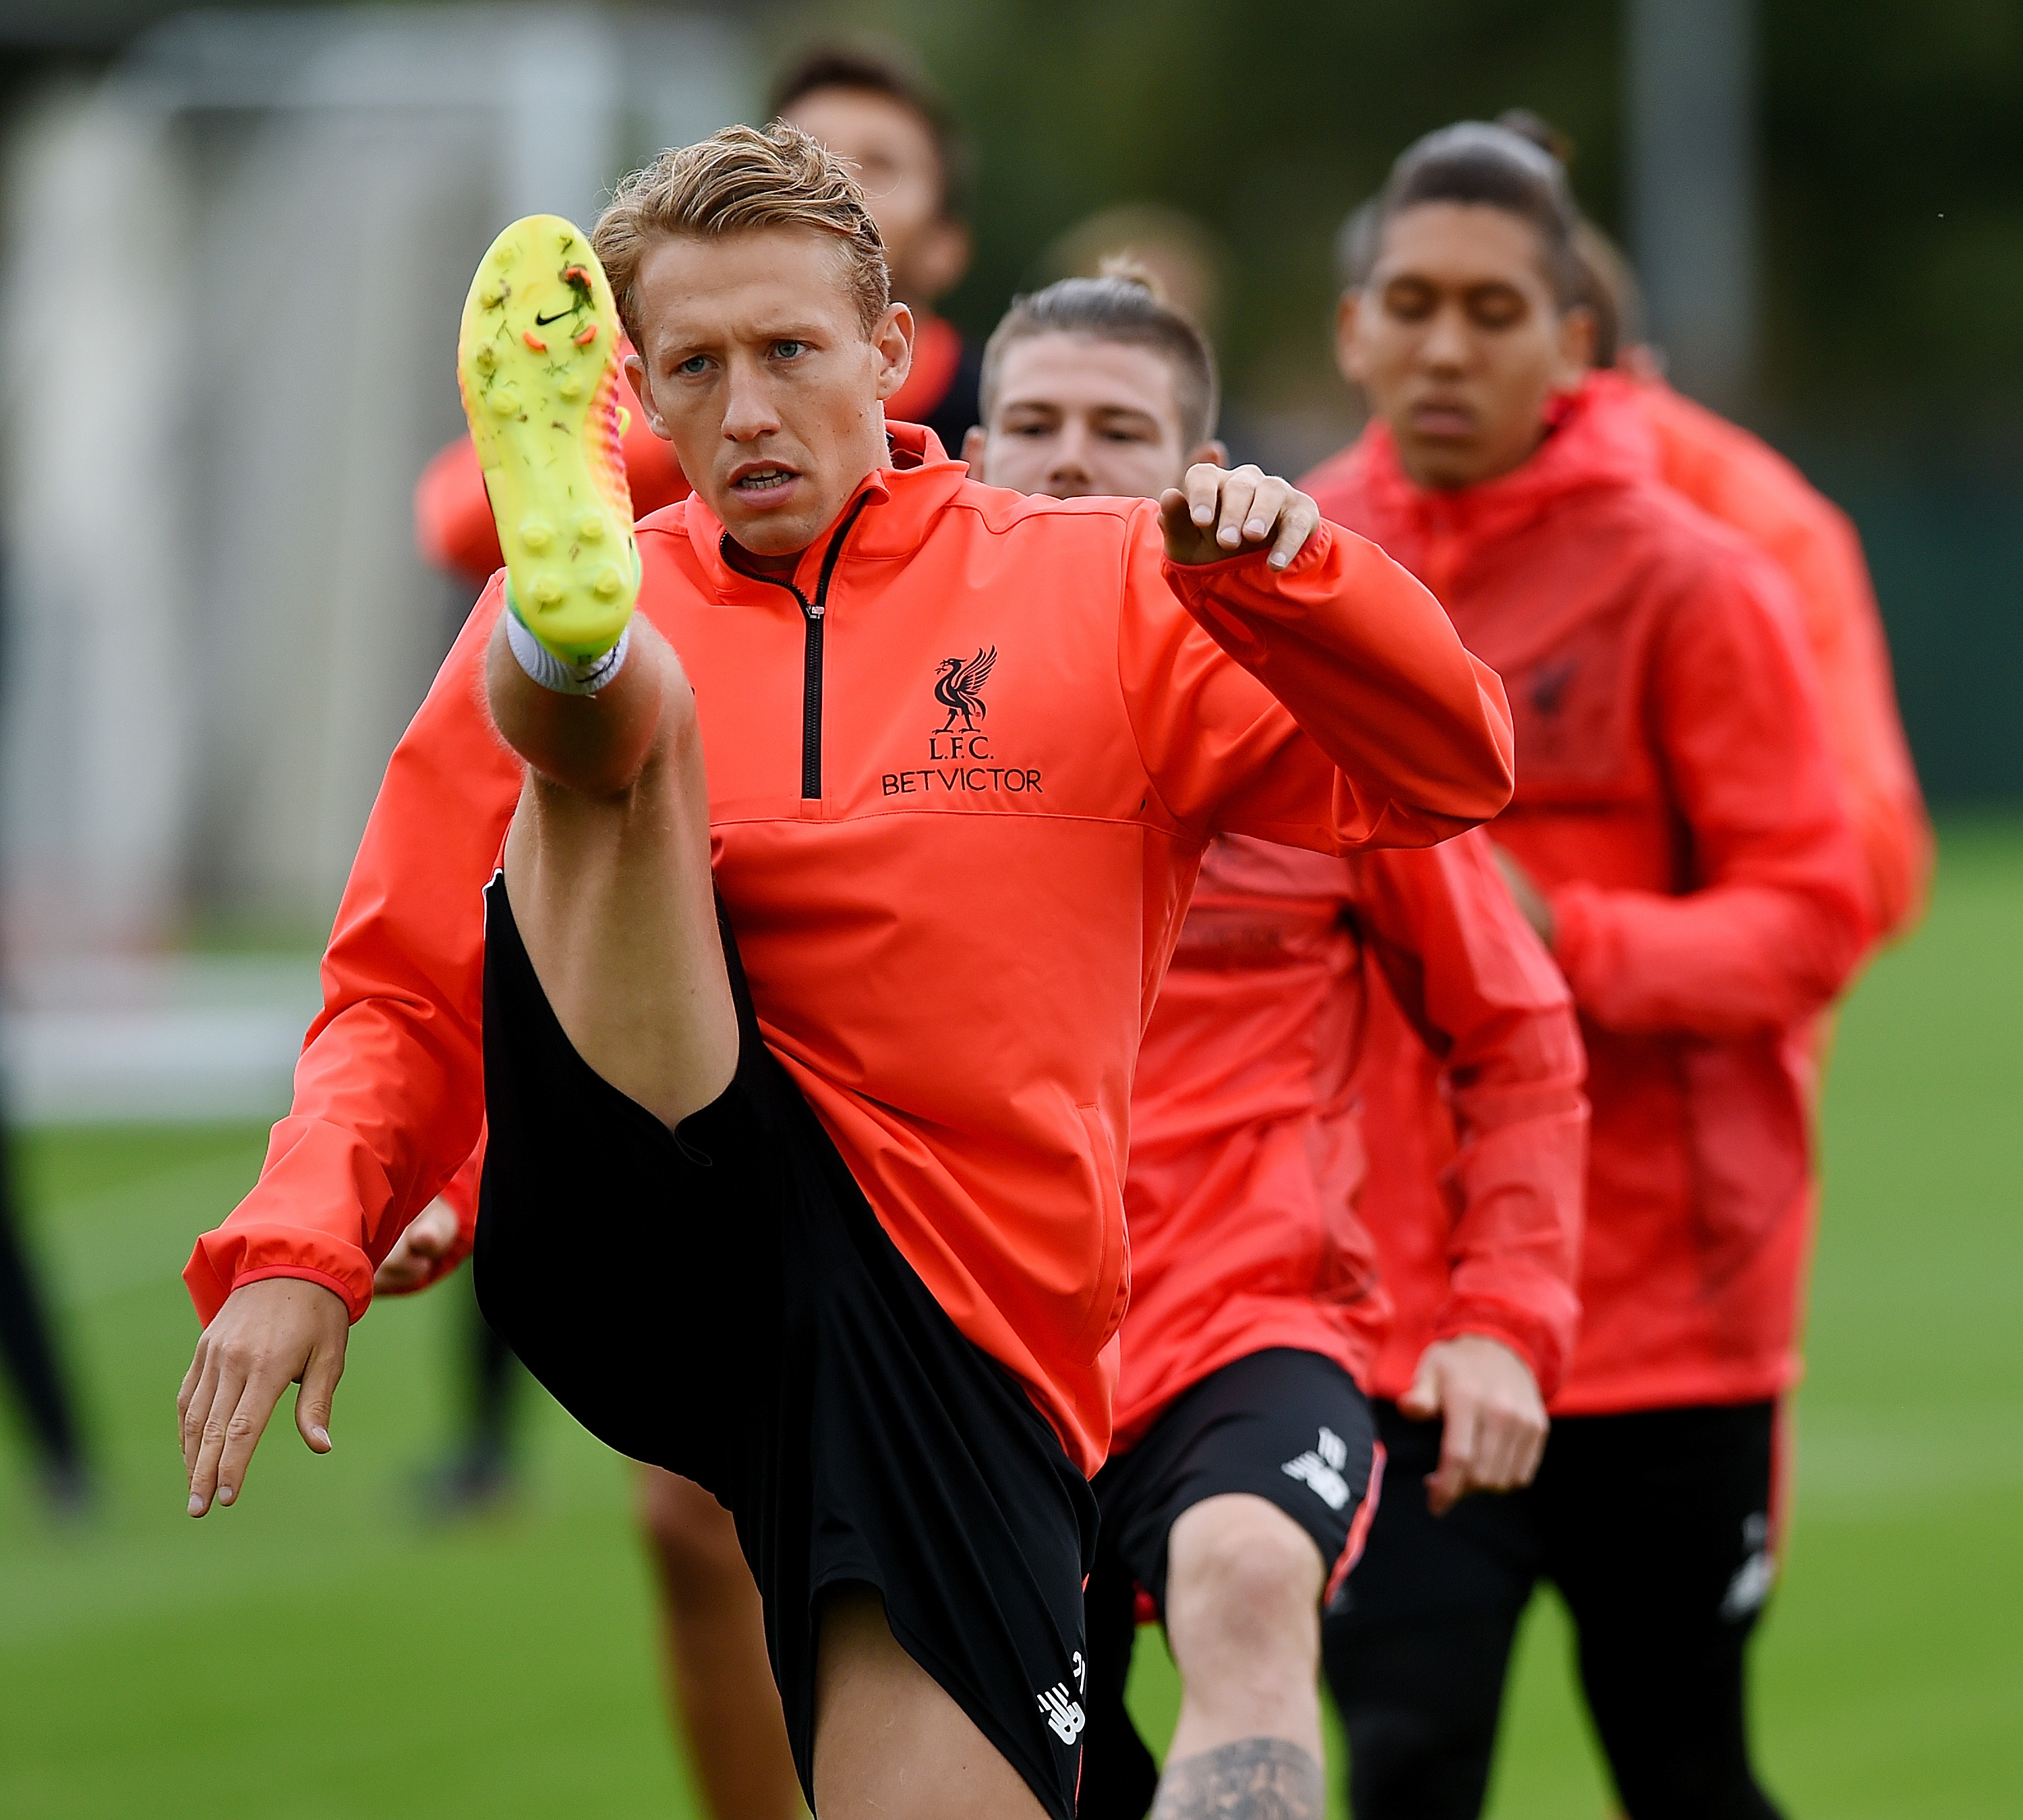 Liverpool's Lucas Leiva unhappy with latest transfer speculation